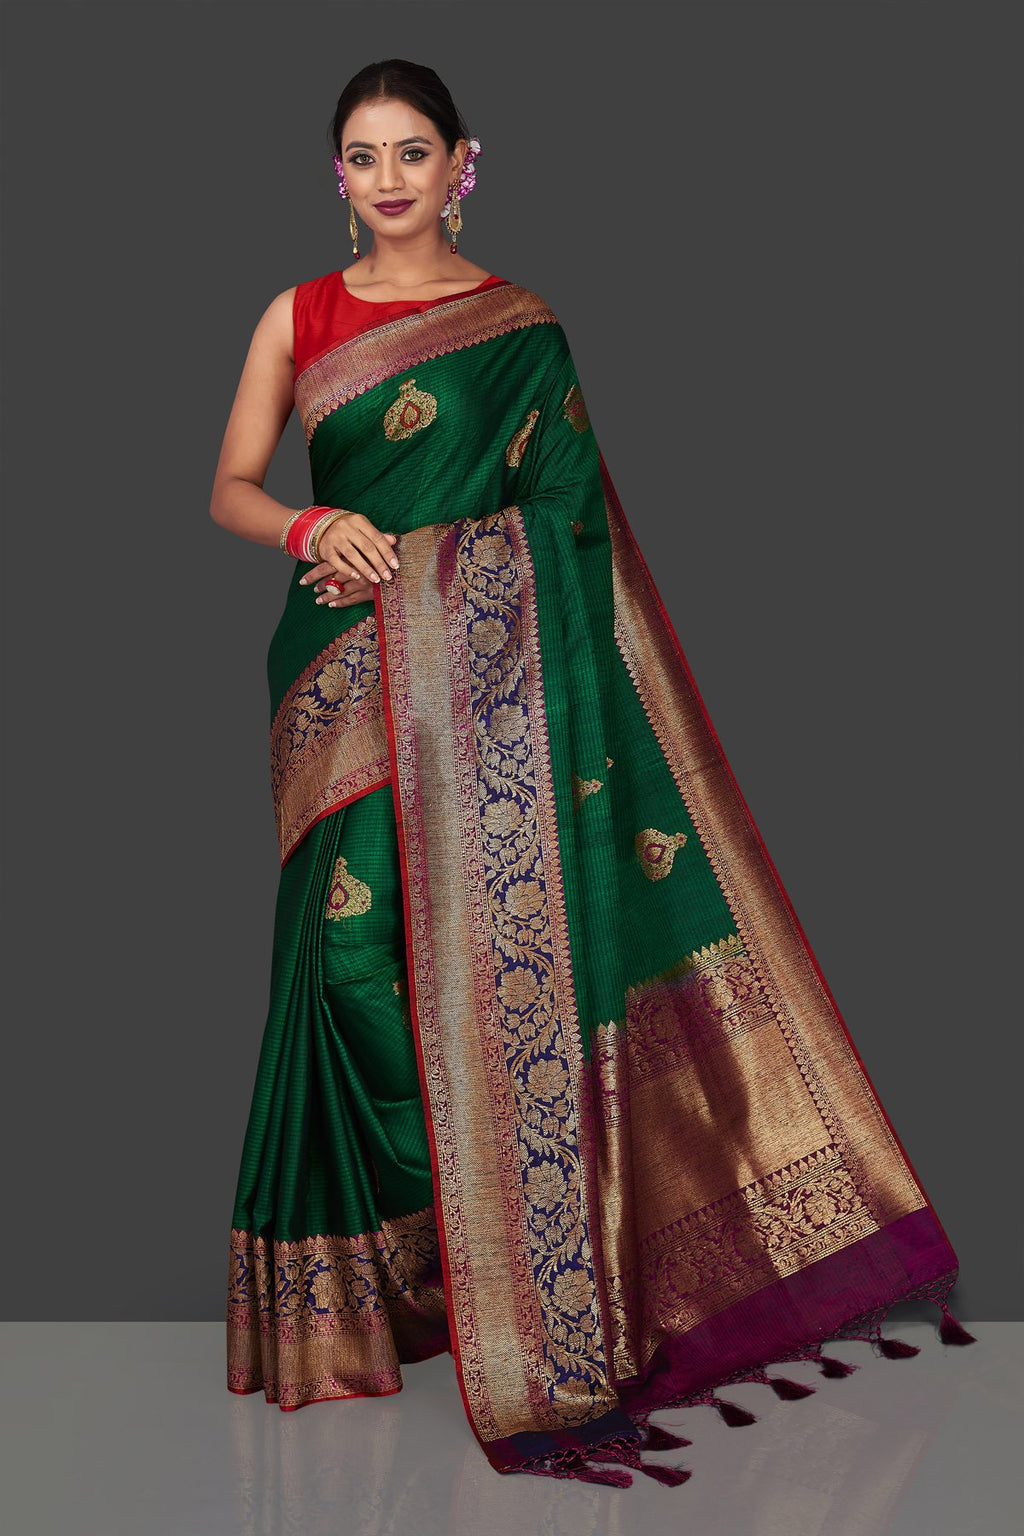 Buy stunning dark green tussar Banarasi saree online in USA with heavy zari buta. Garner compliments on weddings and special occasions with exquisite Banarasi sarees, handwoven silk saris, tussar sarees from Pure Elegance Indian fashion store in USA.-full view